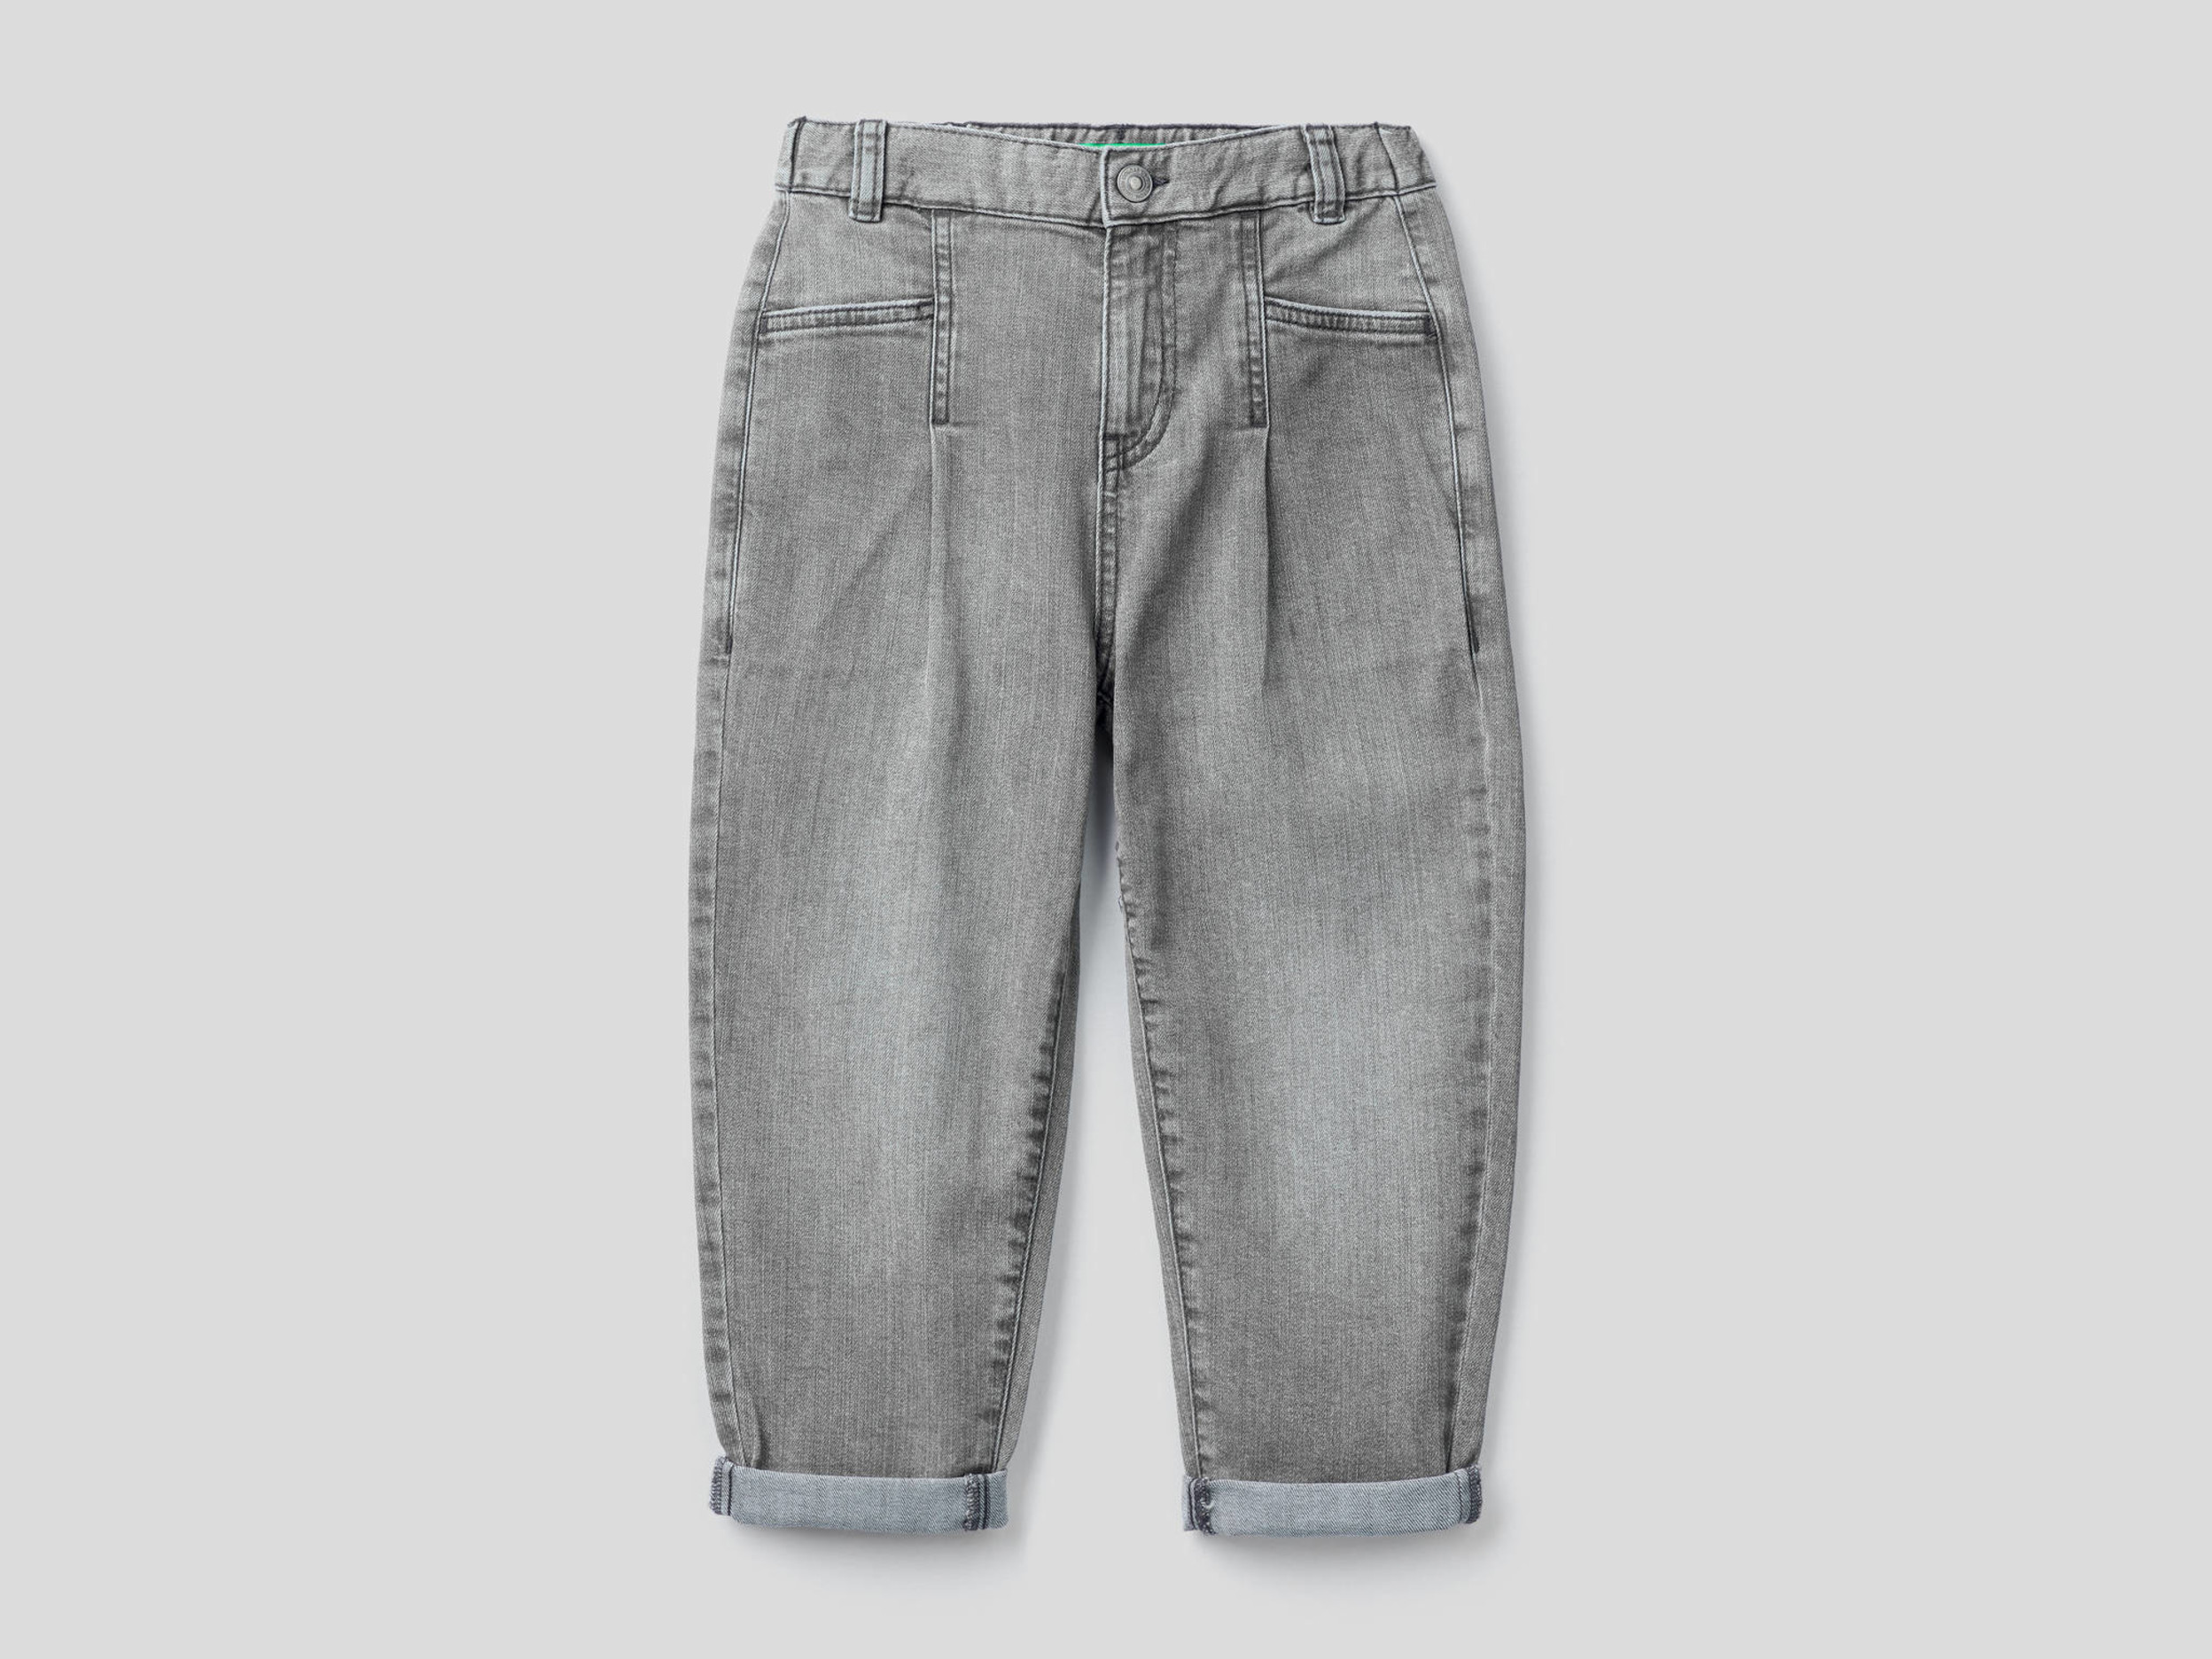 Benetton, Jeans Slouchy In Cotone Stretch, Grigio, Bambini